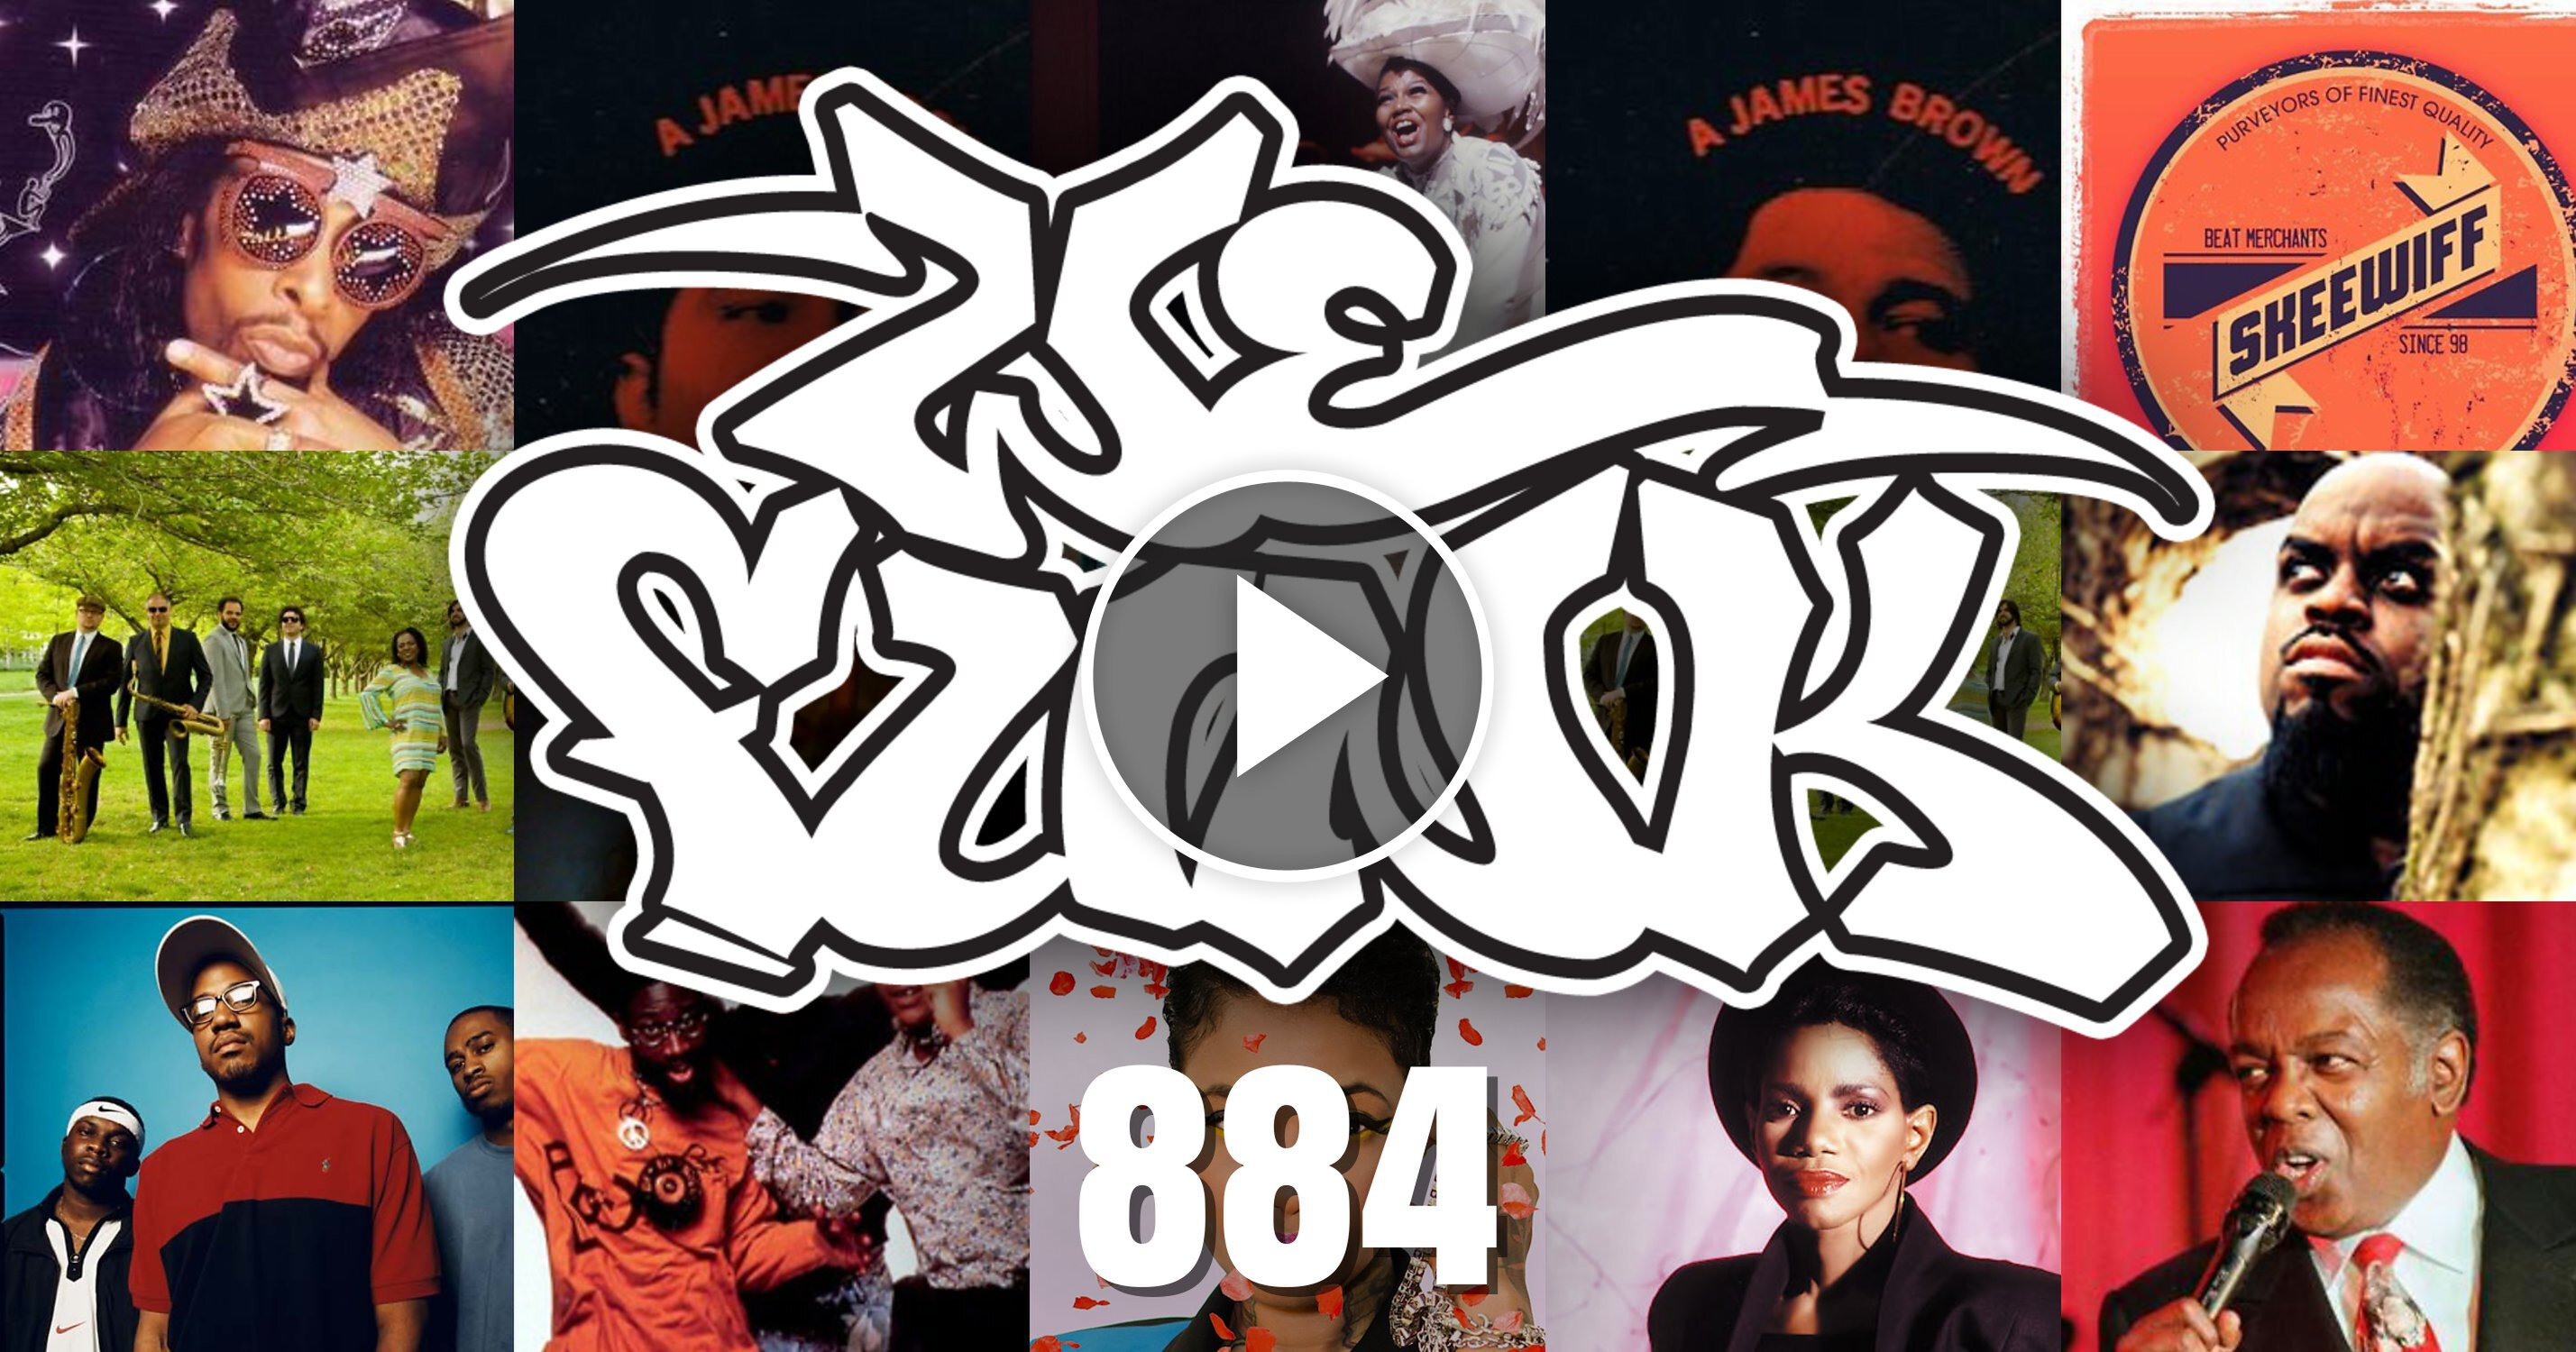 WEFUNK Show 884